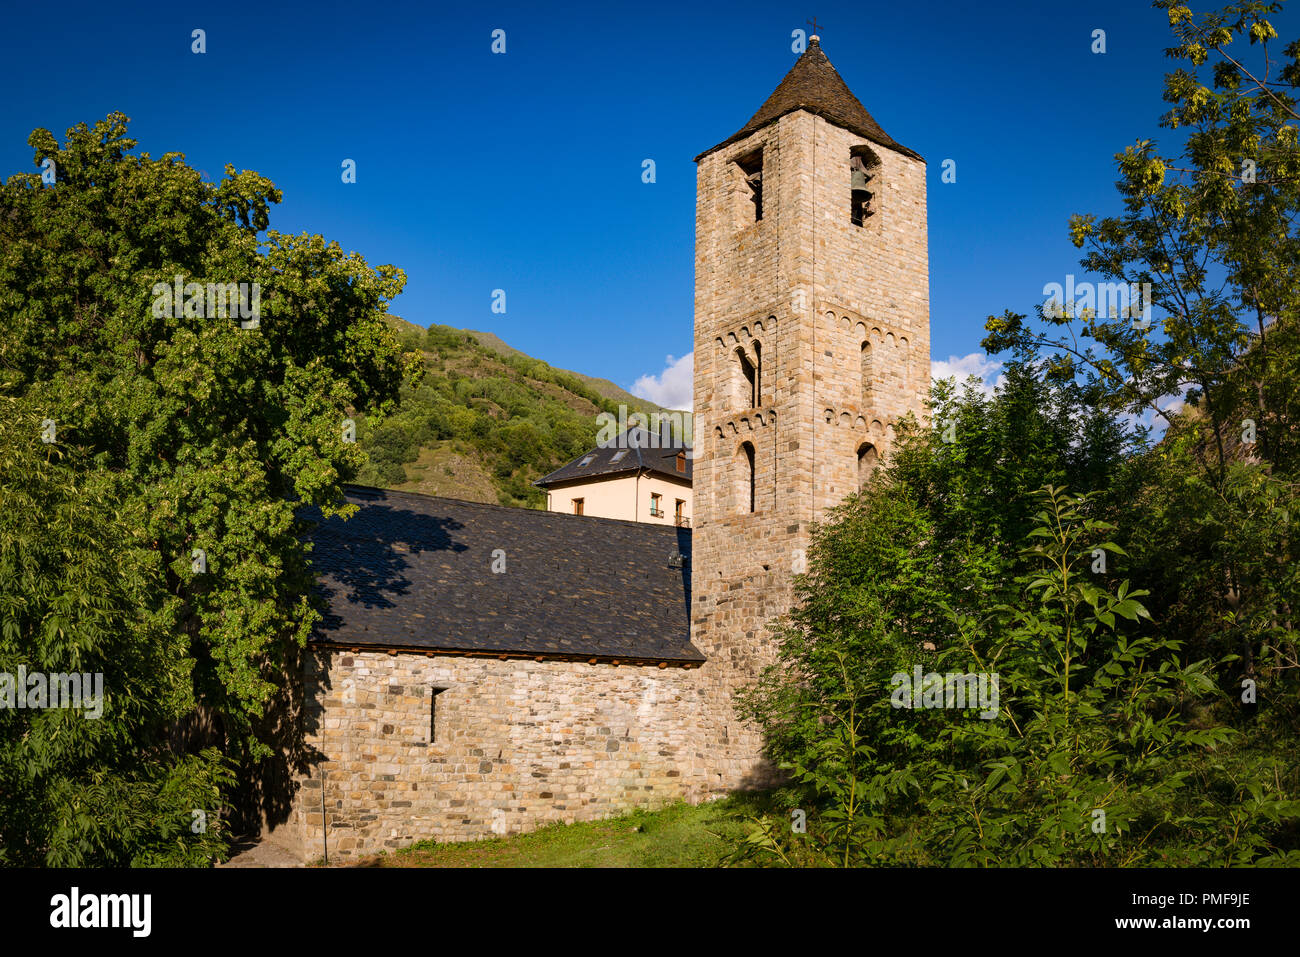 Belfry and church of Sant Joan de Boi, Catalonia, Spain. Romanesque style - Stock Image